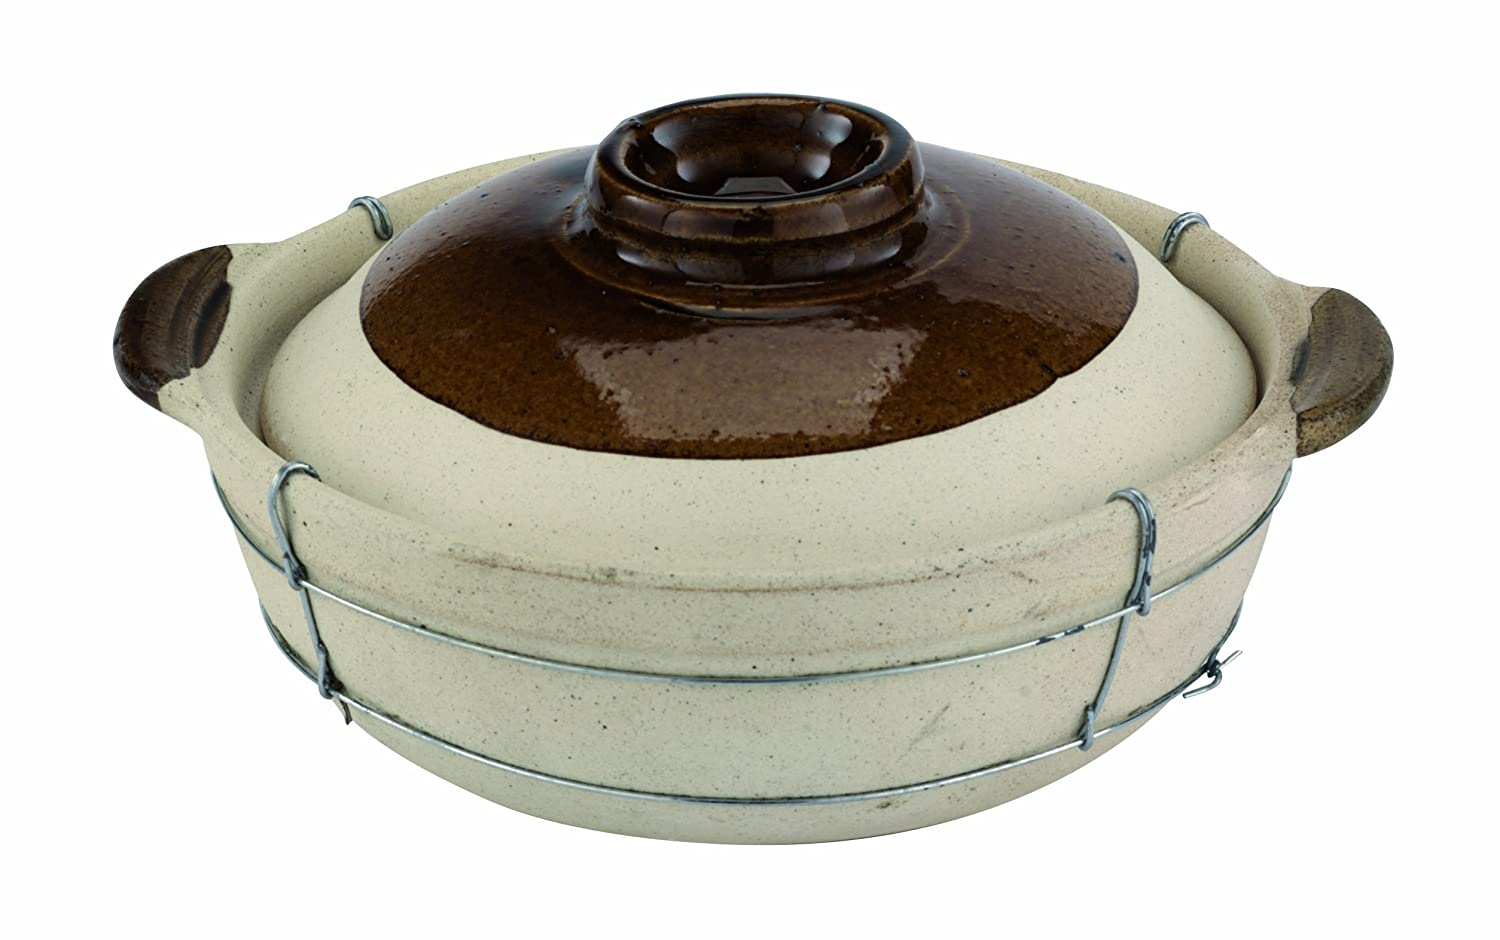 Paderno World Cuisine Dual-Handled Unglazed Cooking Pot with Lid